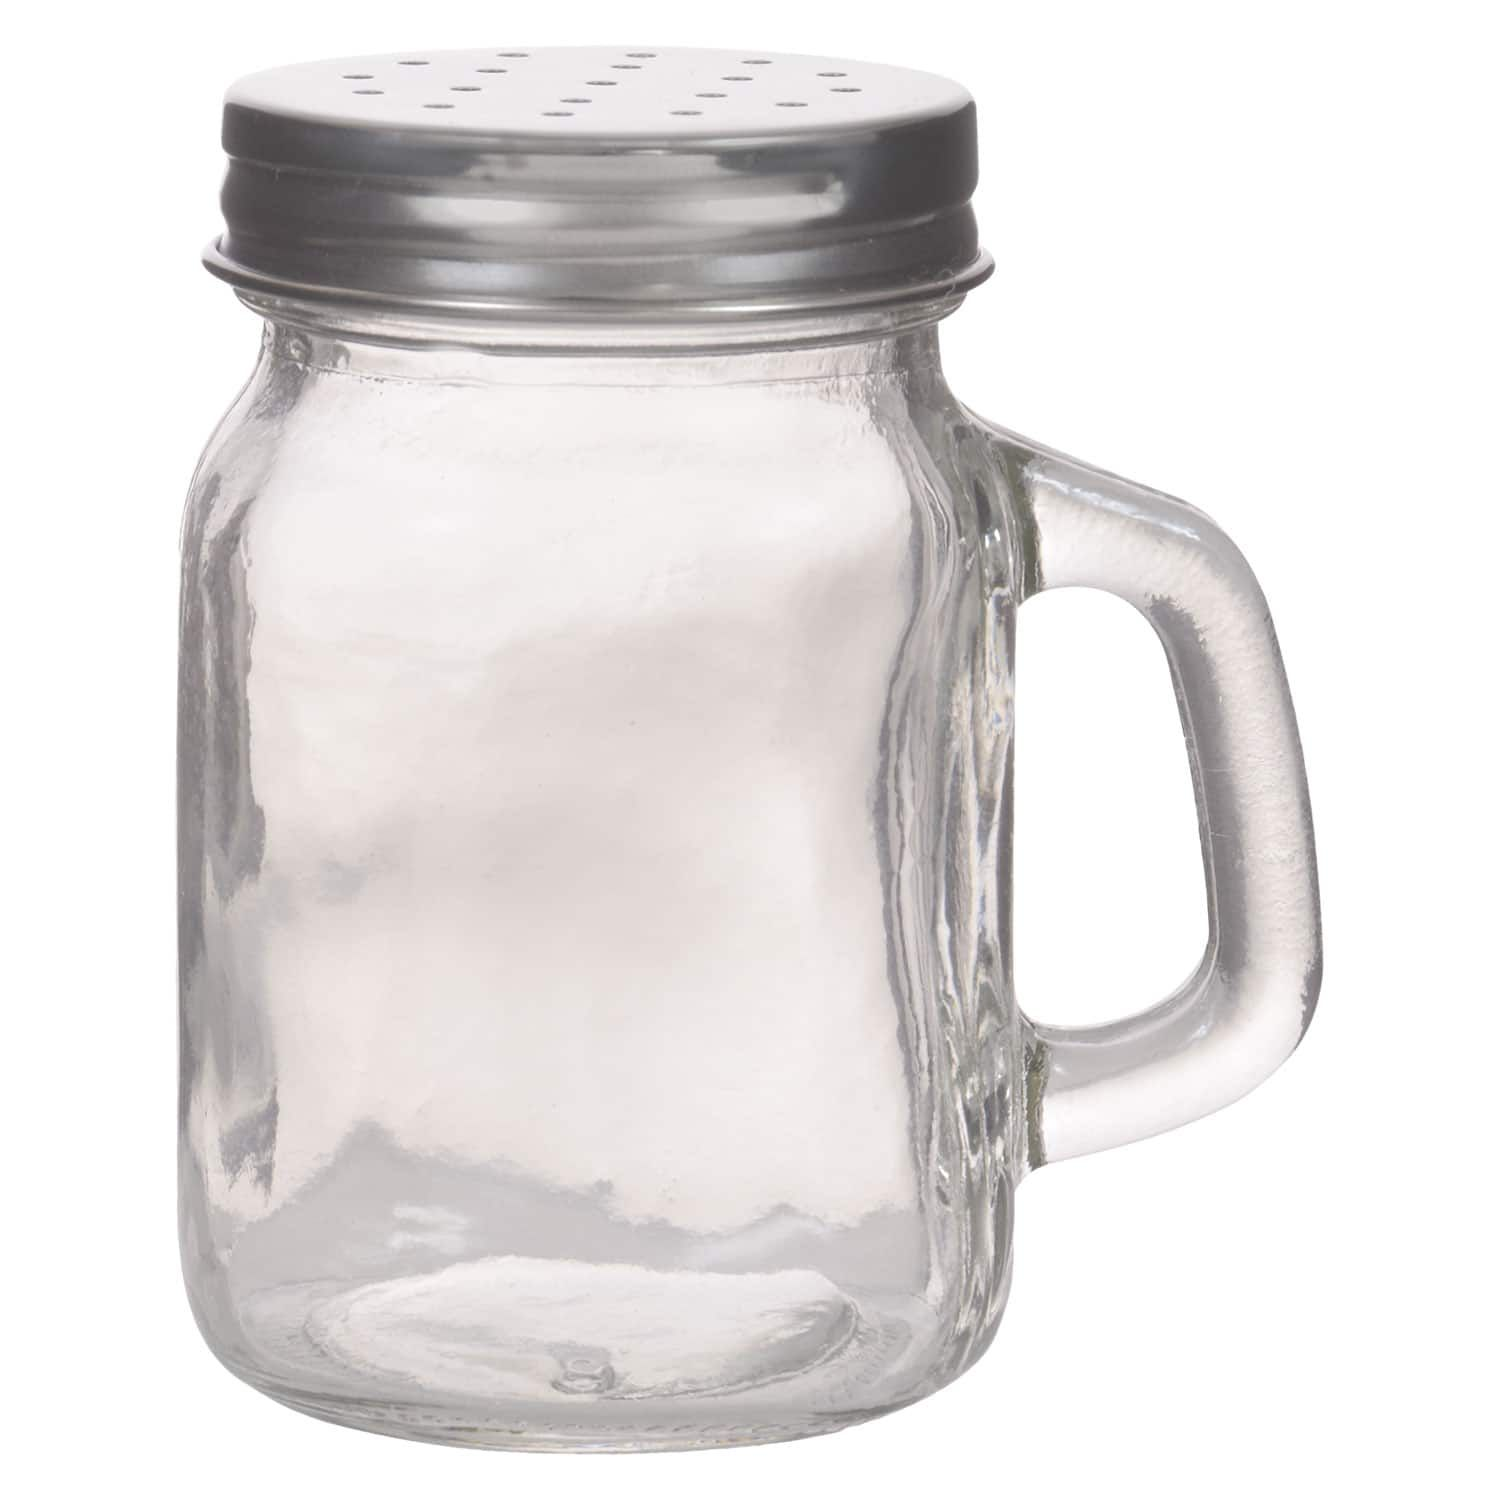 Mini Glass Shaker Jars With Handles And Metal Lids Jar Glass Containers Crafts With Glass Jars